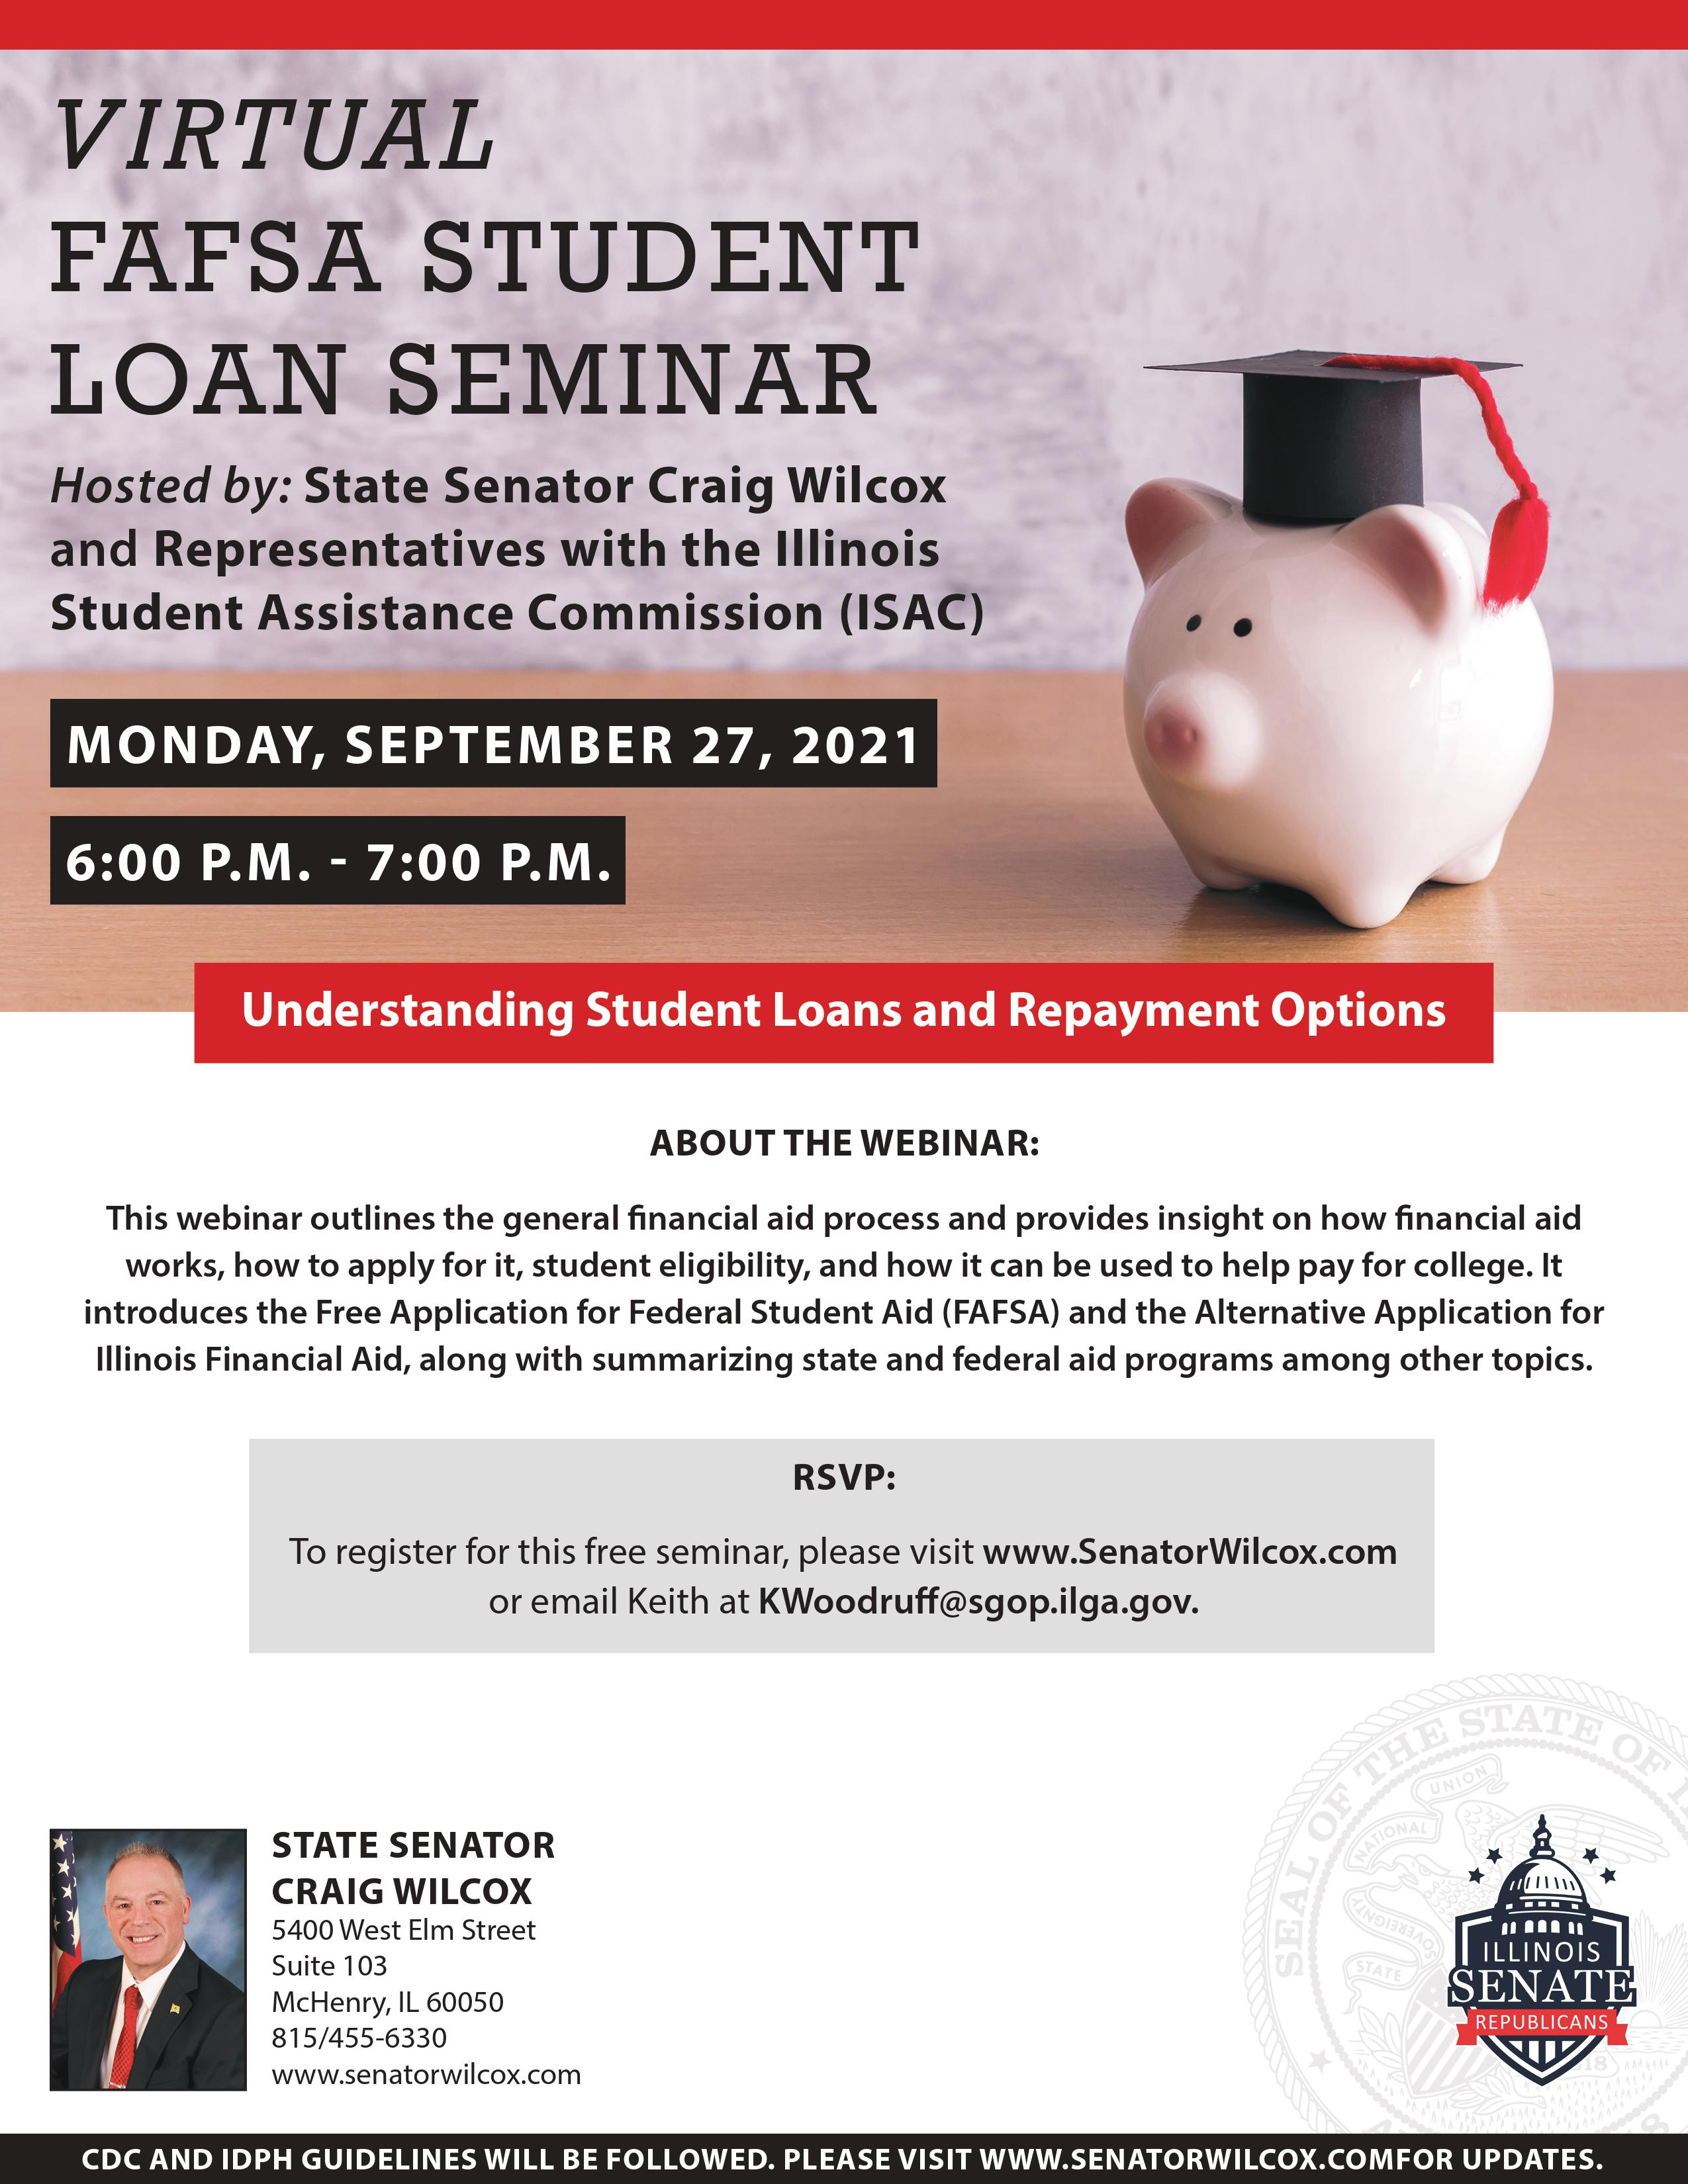 Poster with details of financial aid webinar